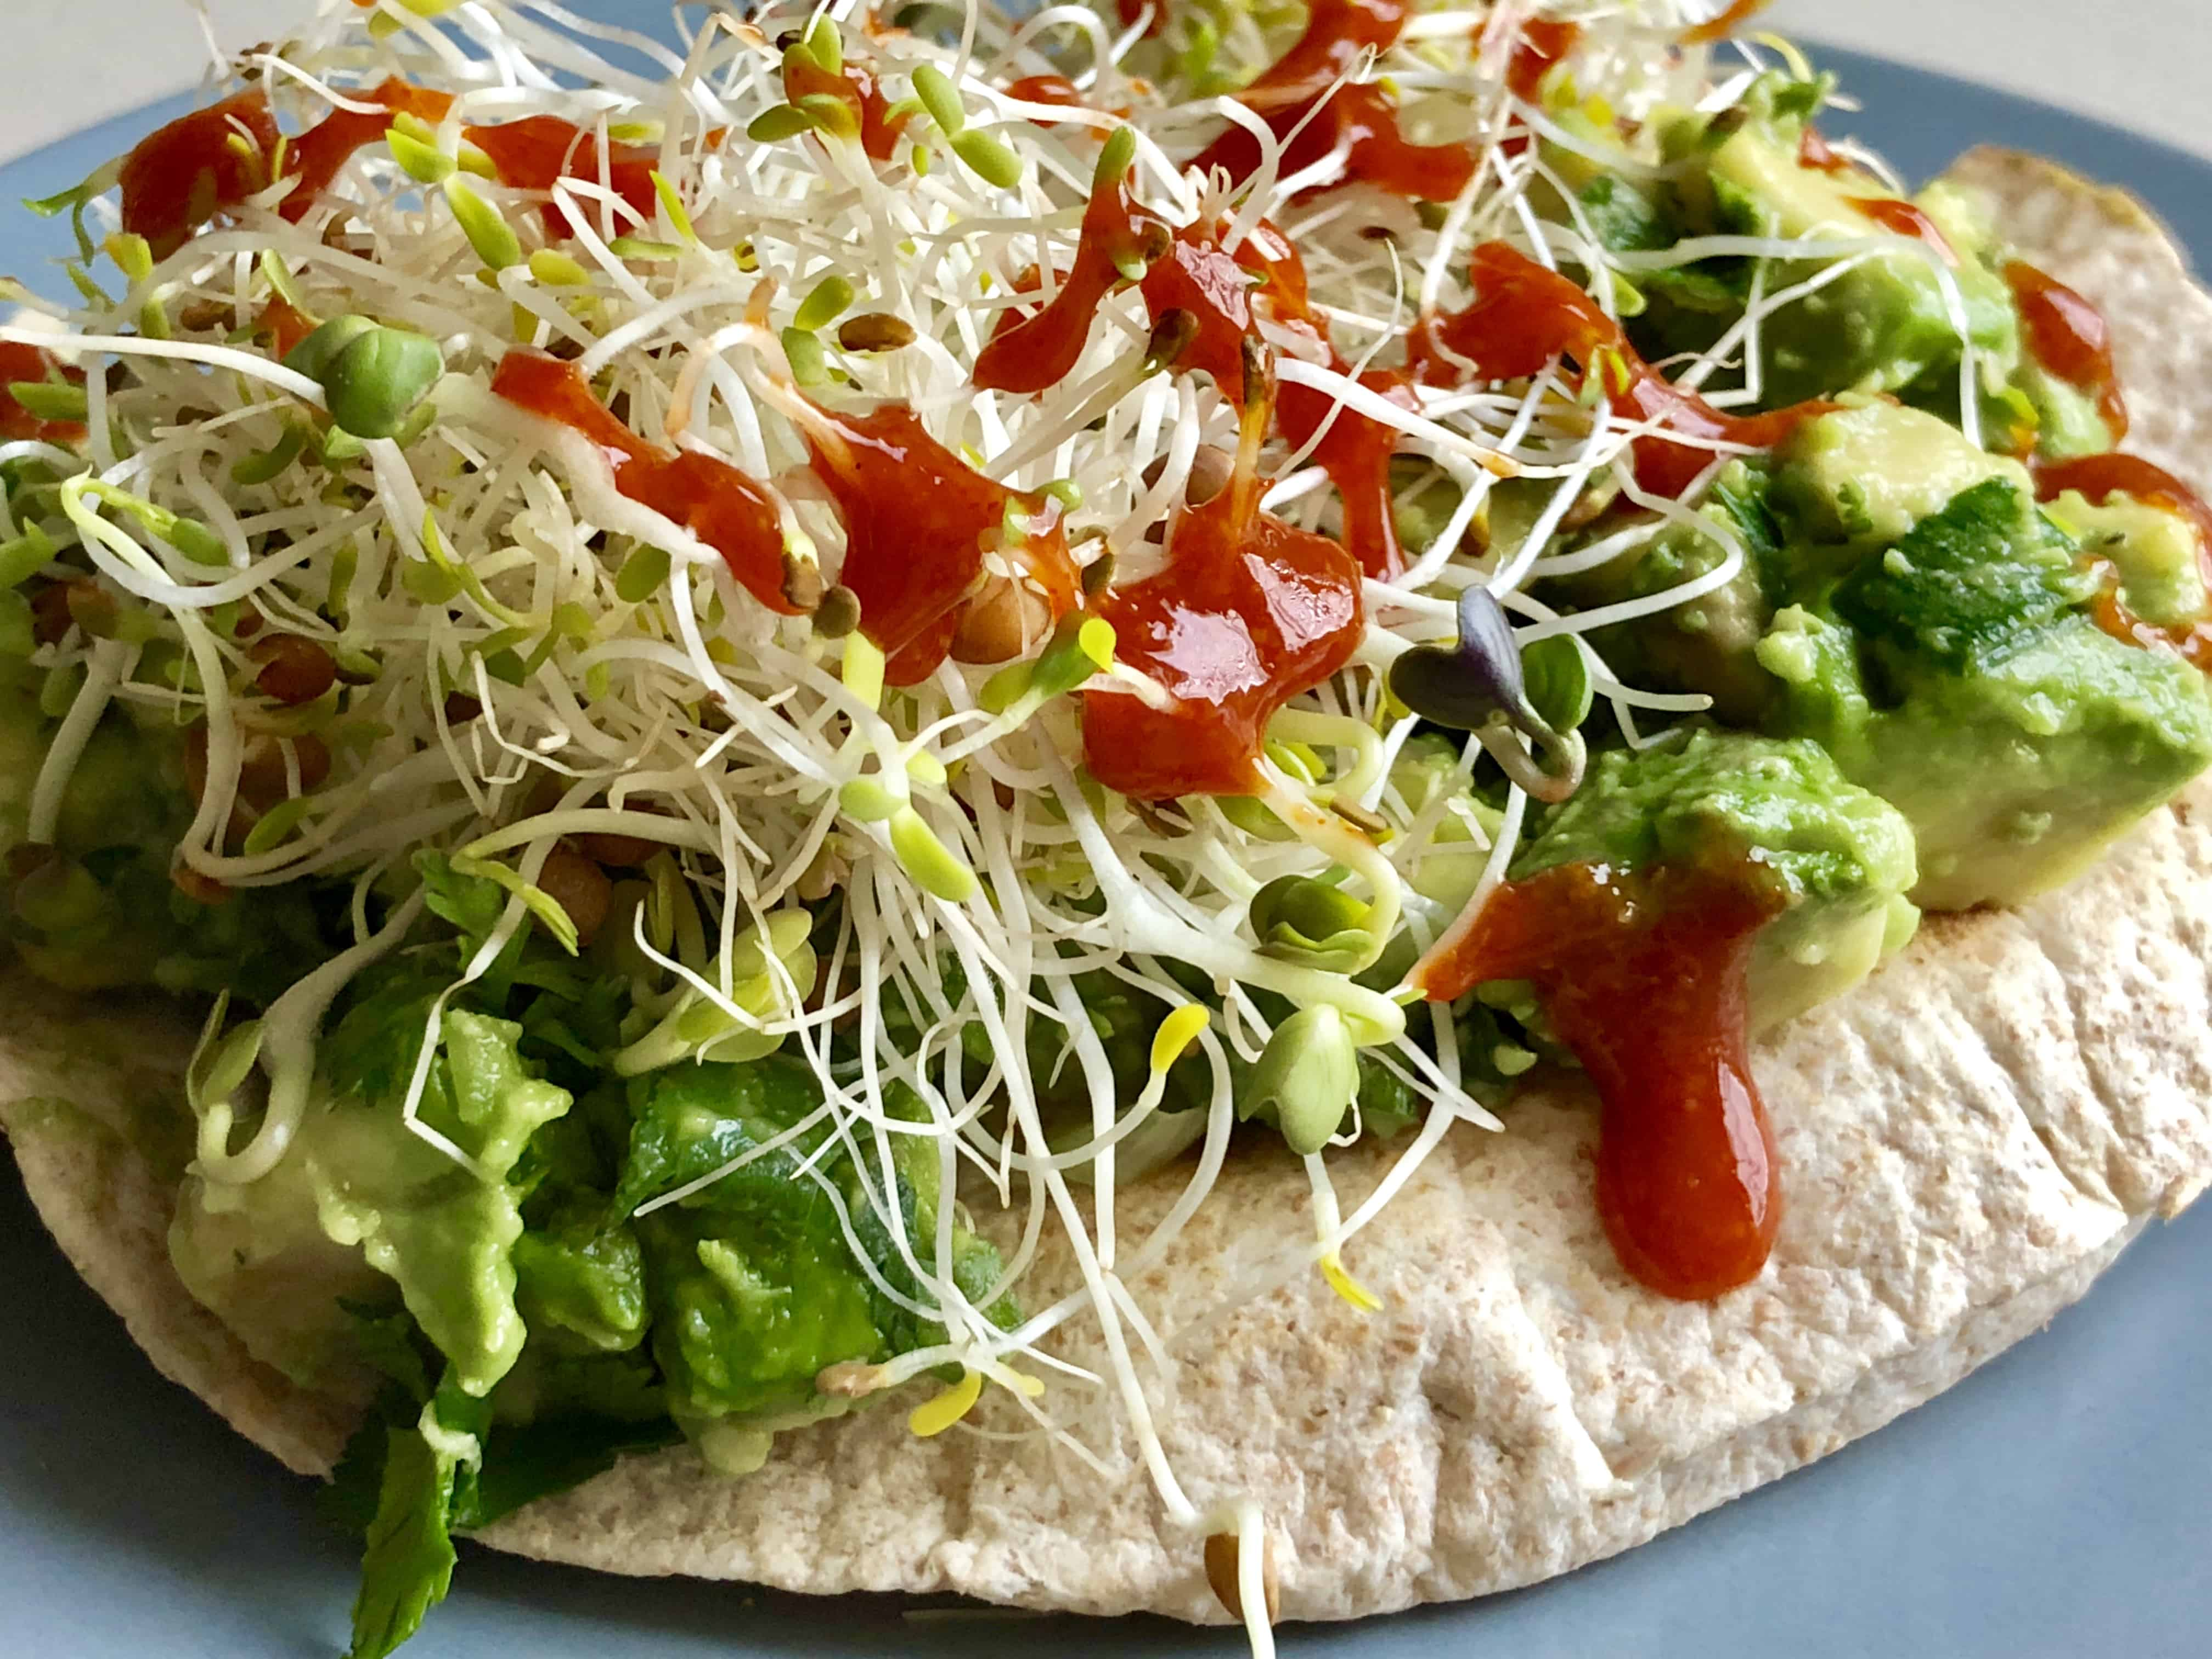 simple avocado salad on tortilla with bean sprouts and hot sauce